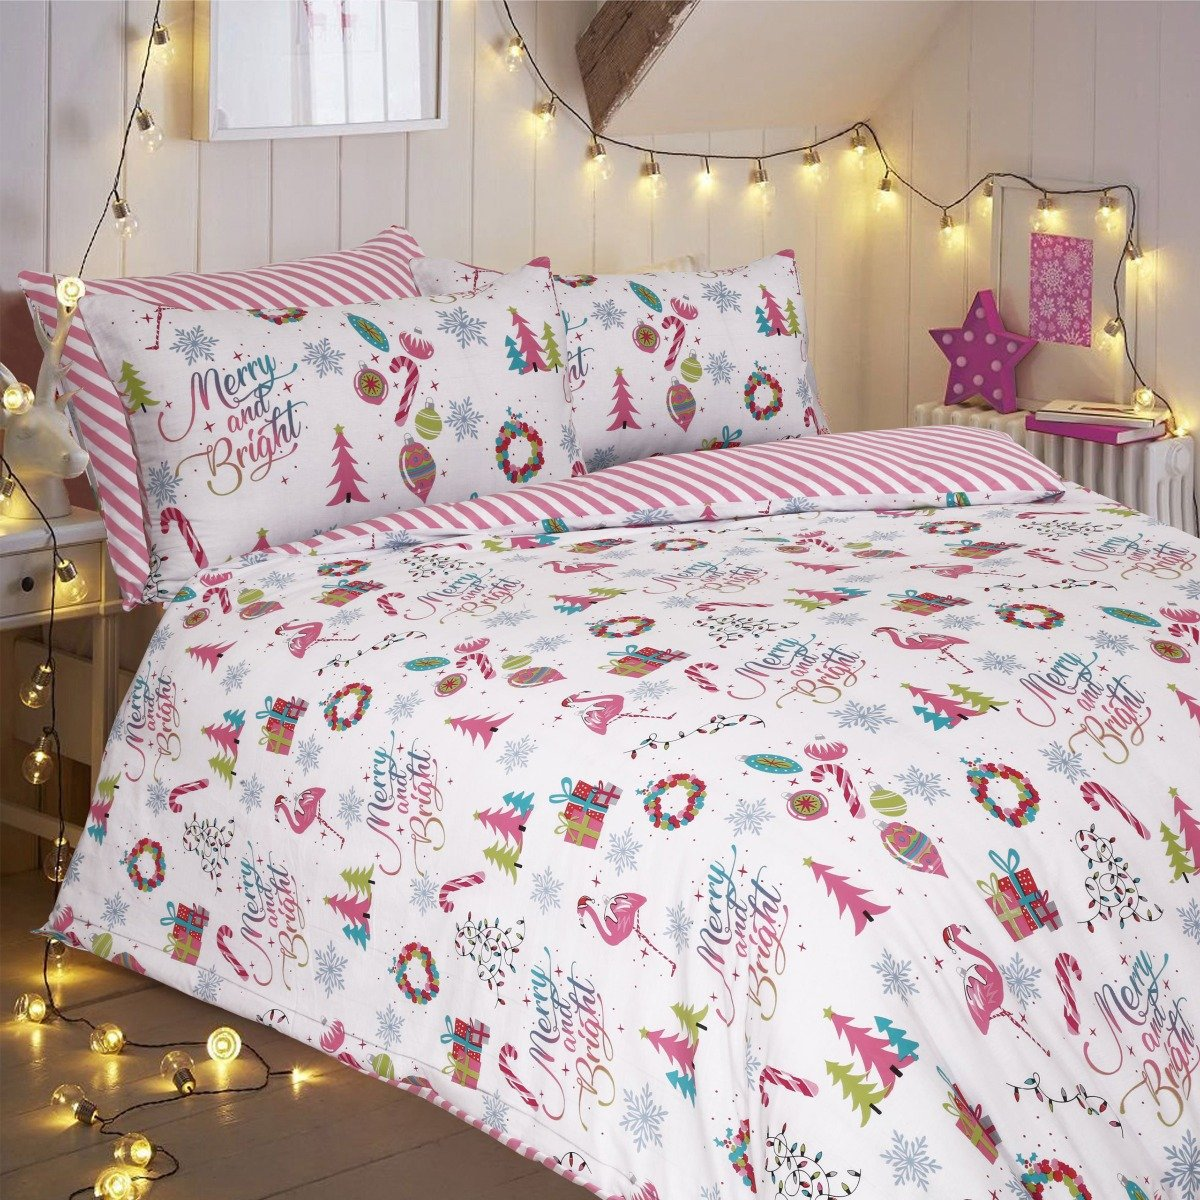 Merry And Bright Pink Bedding Set Sleepdown Official Uk Duvet Cover Sets Bedding Linen